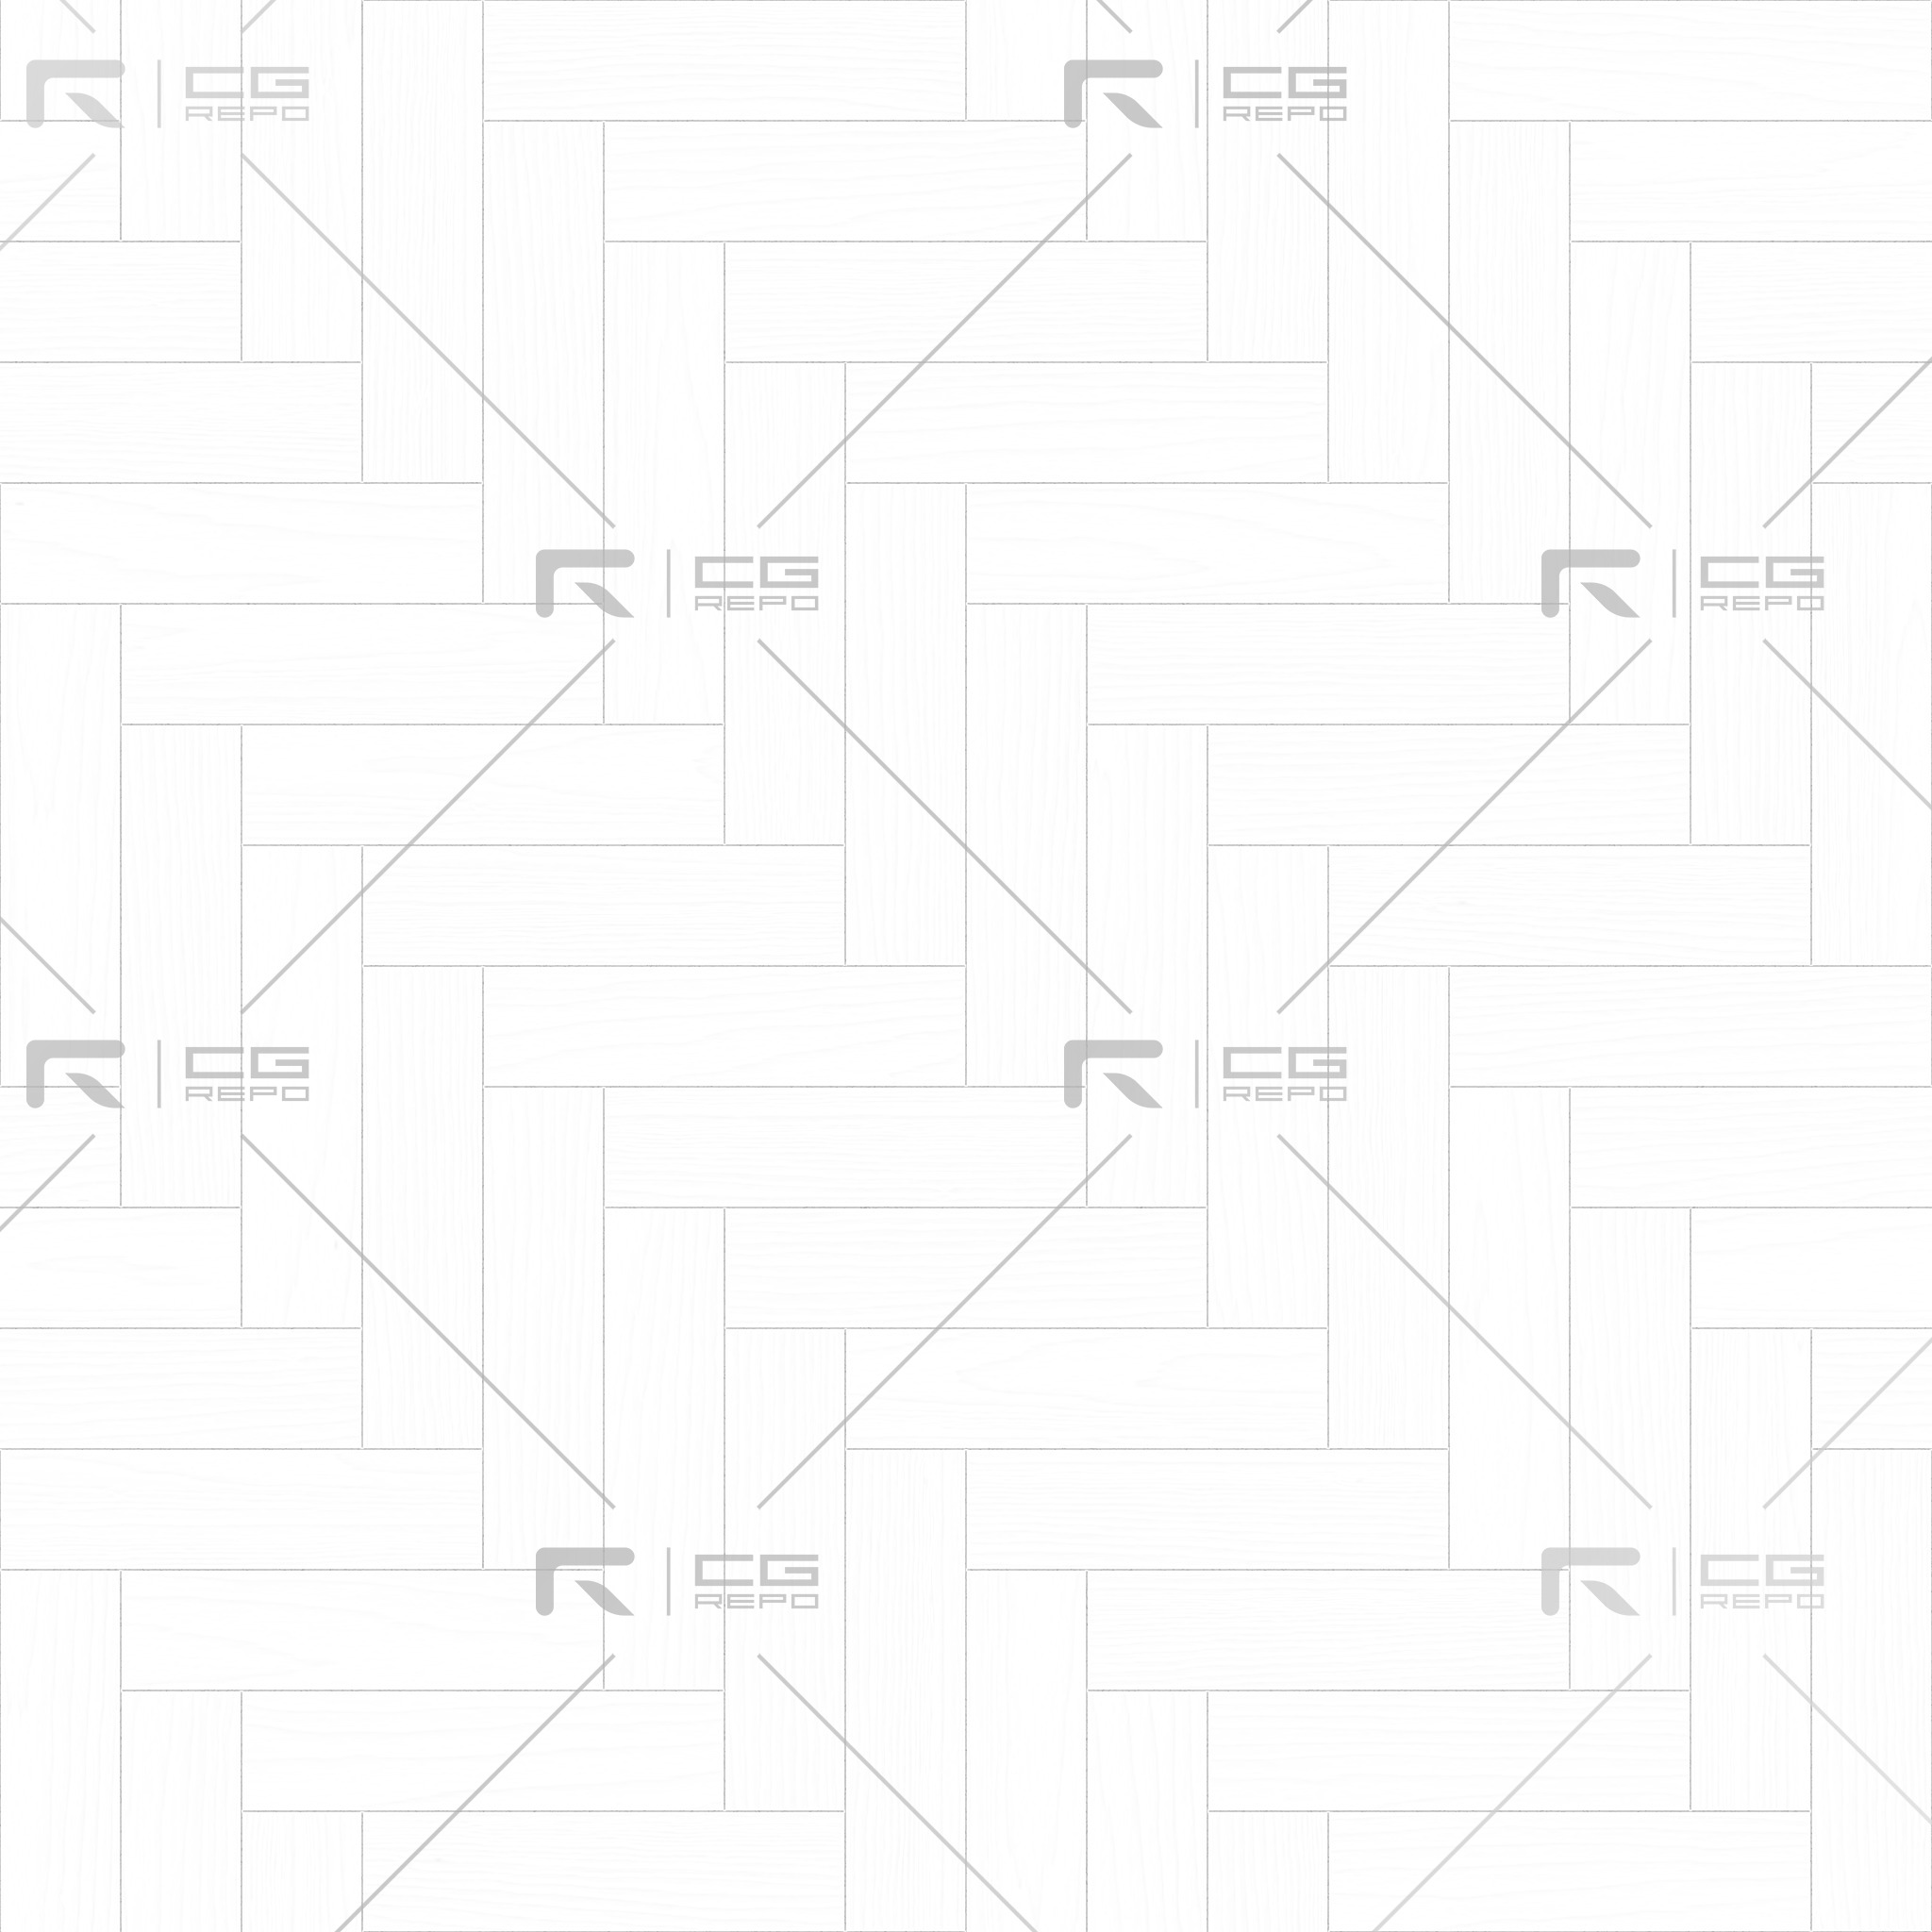 Oak English Dark Herringbone Ambient Occlusion Texture